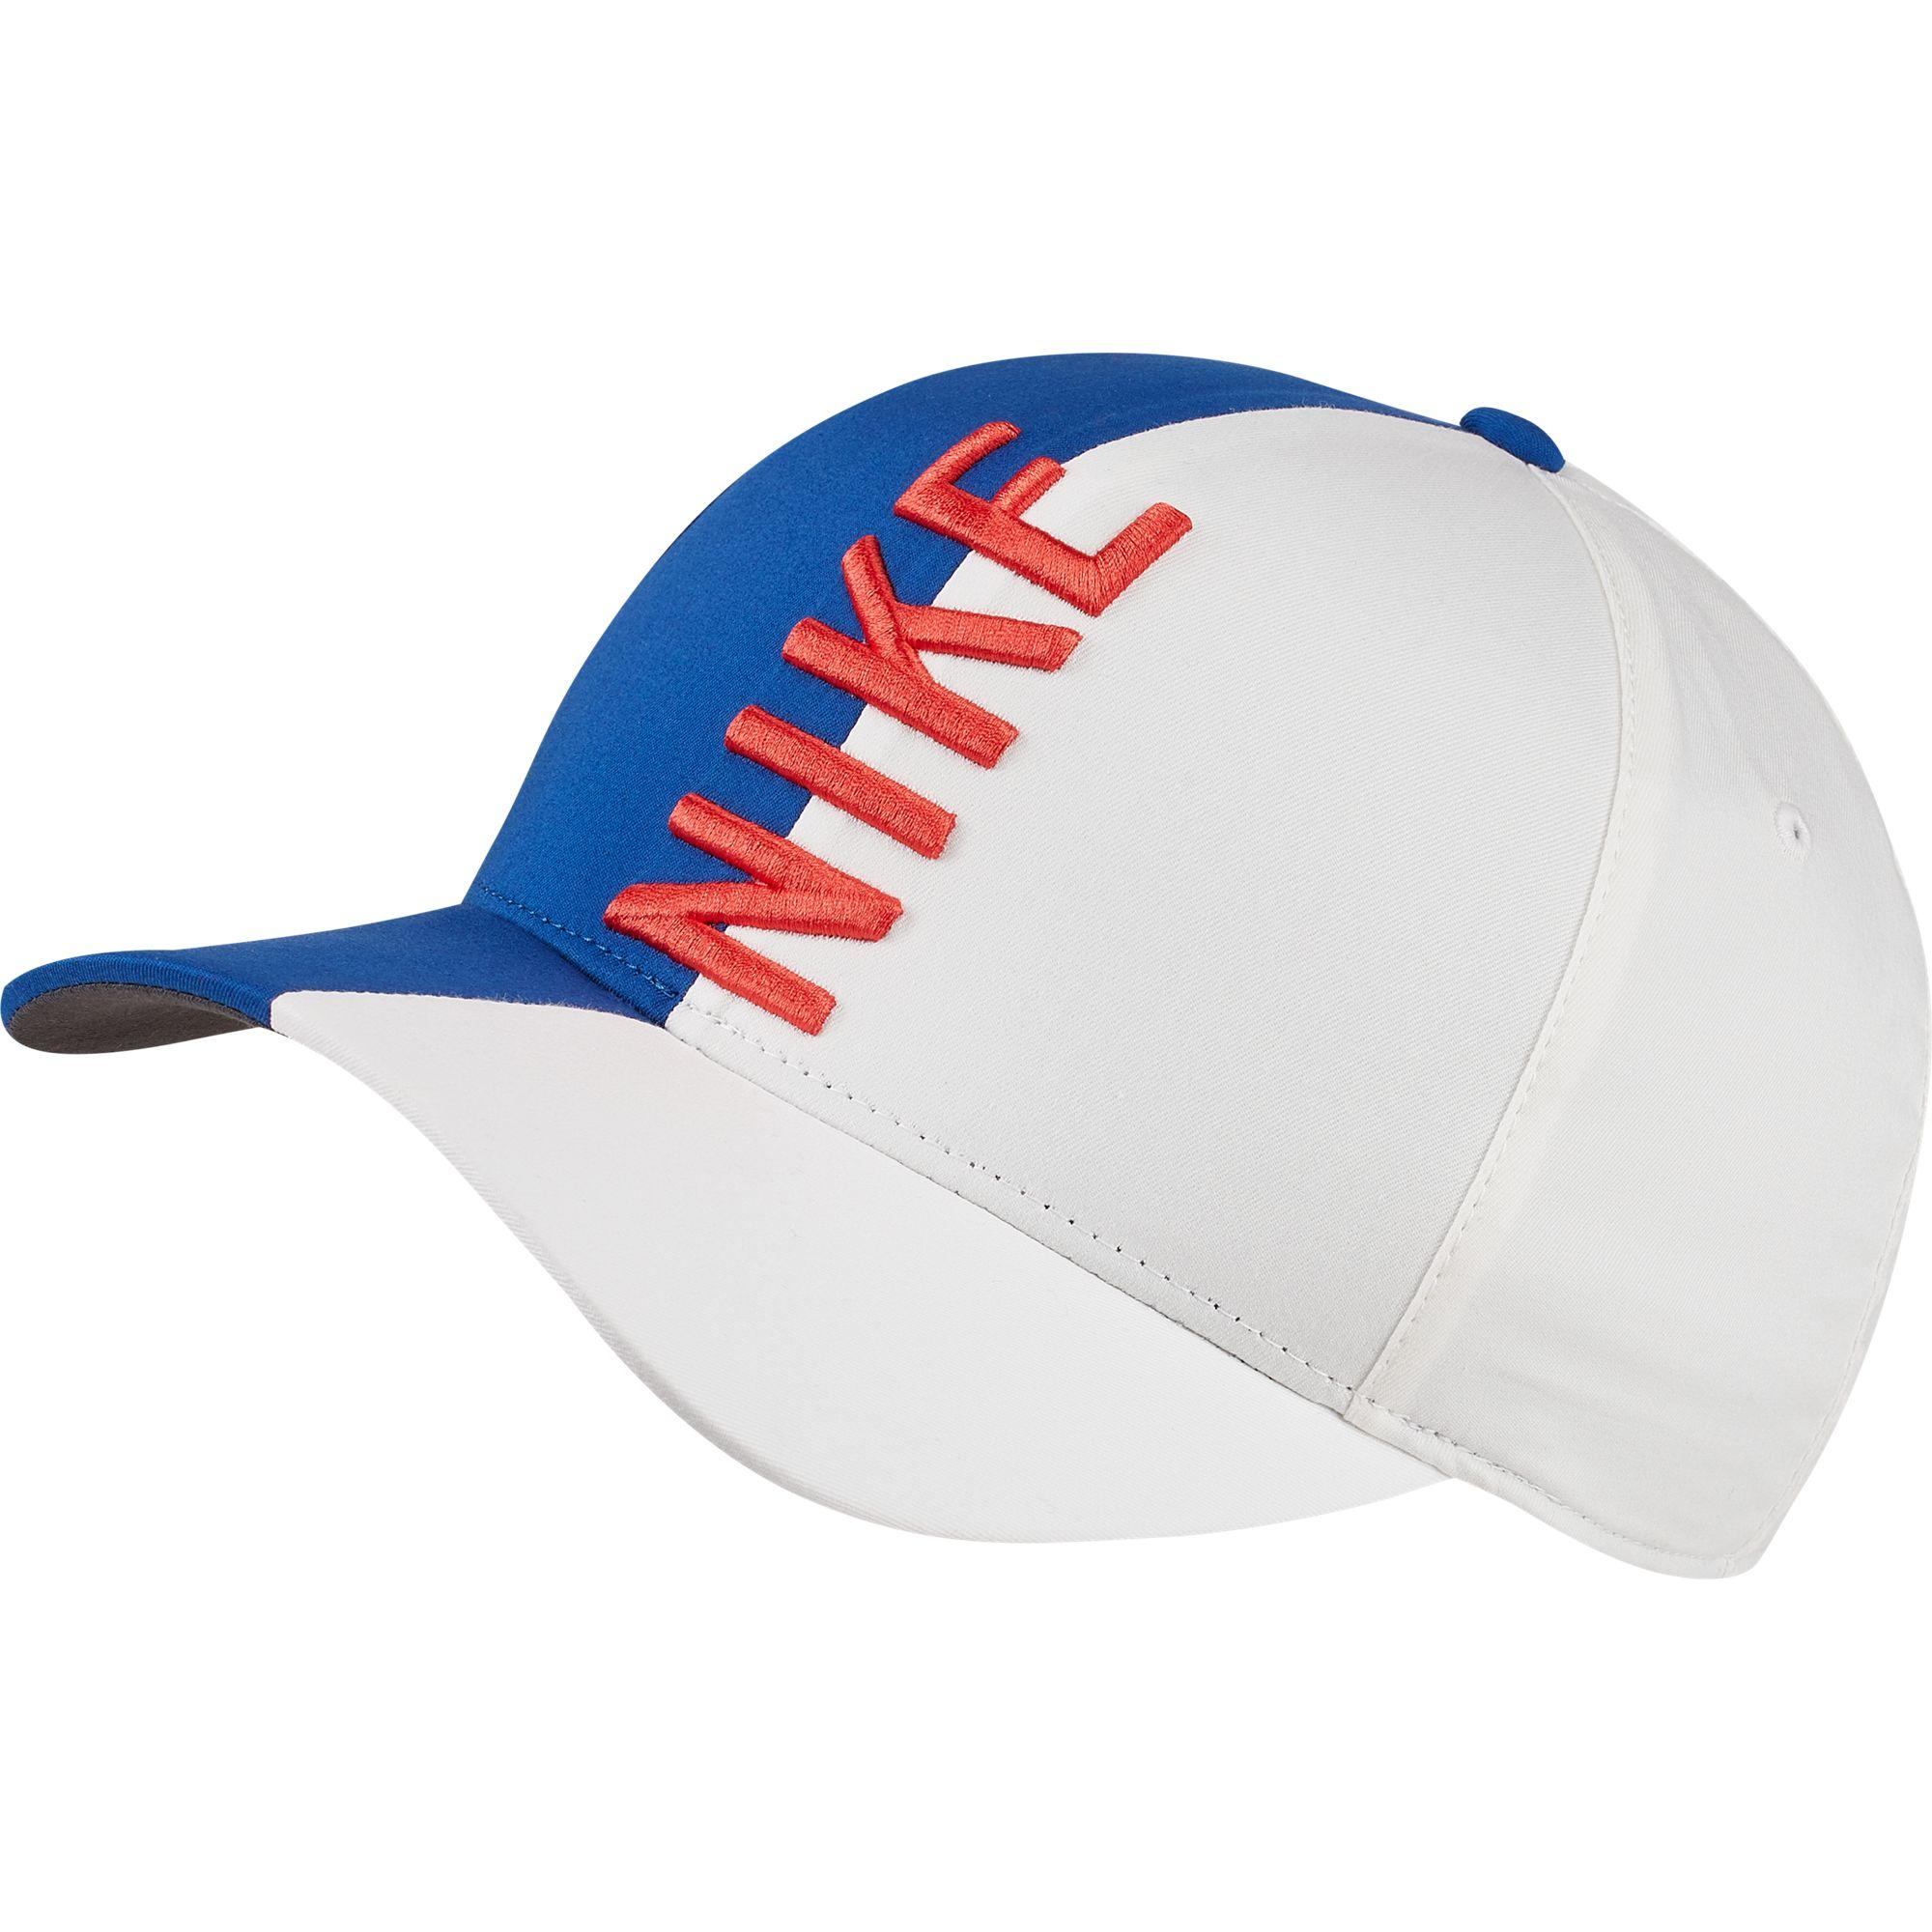 5255f7d379d Lyst - Nike Aerobill Classic99 Golf Hat in Blue for Men